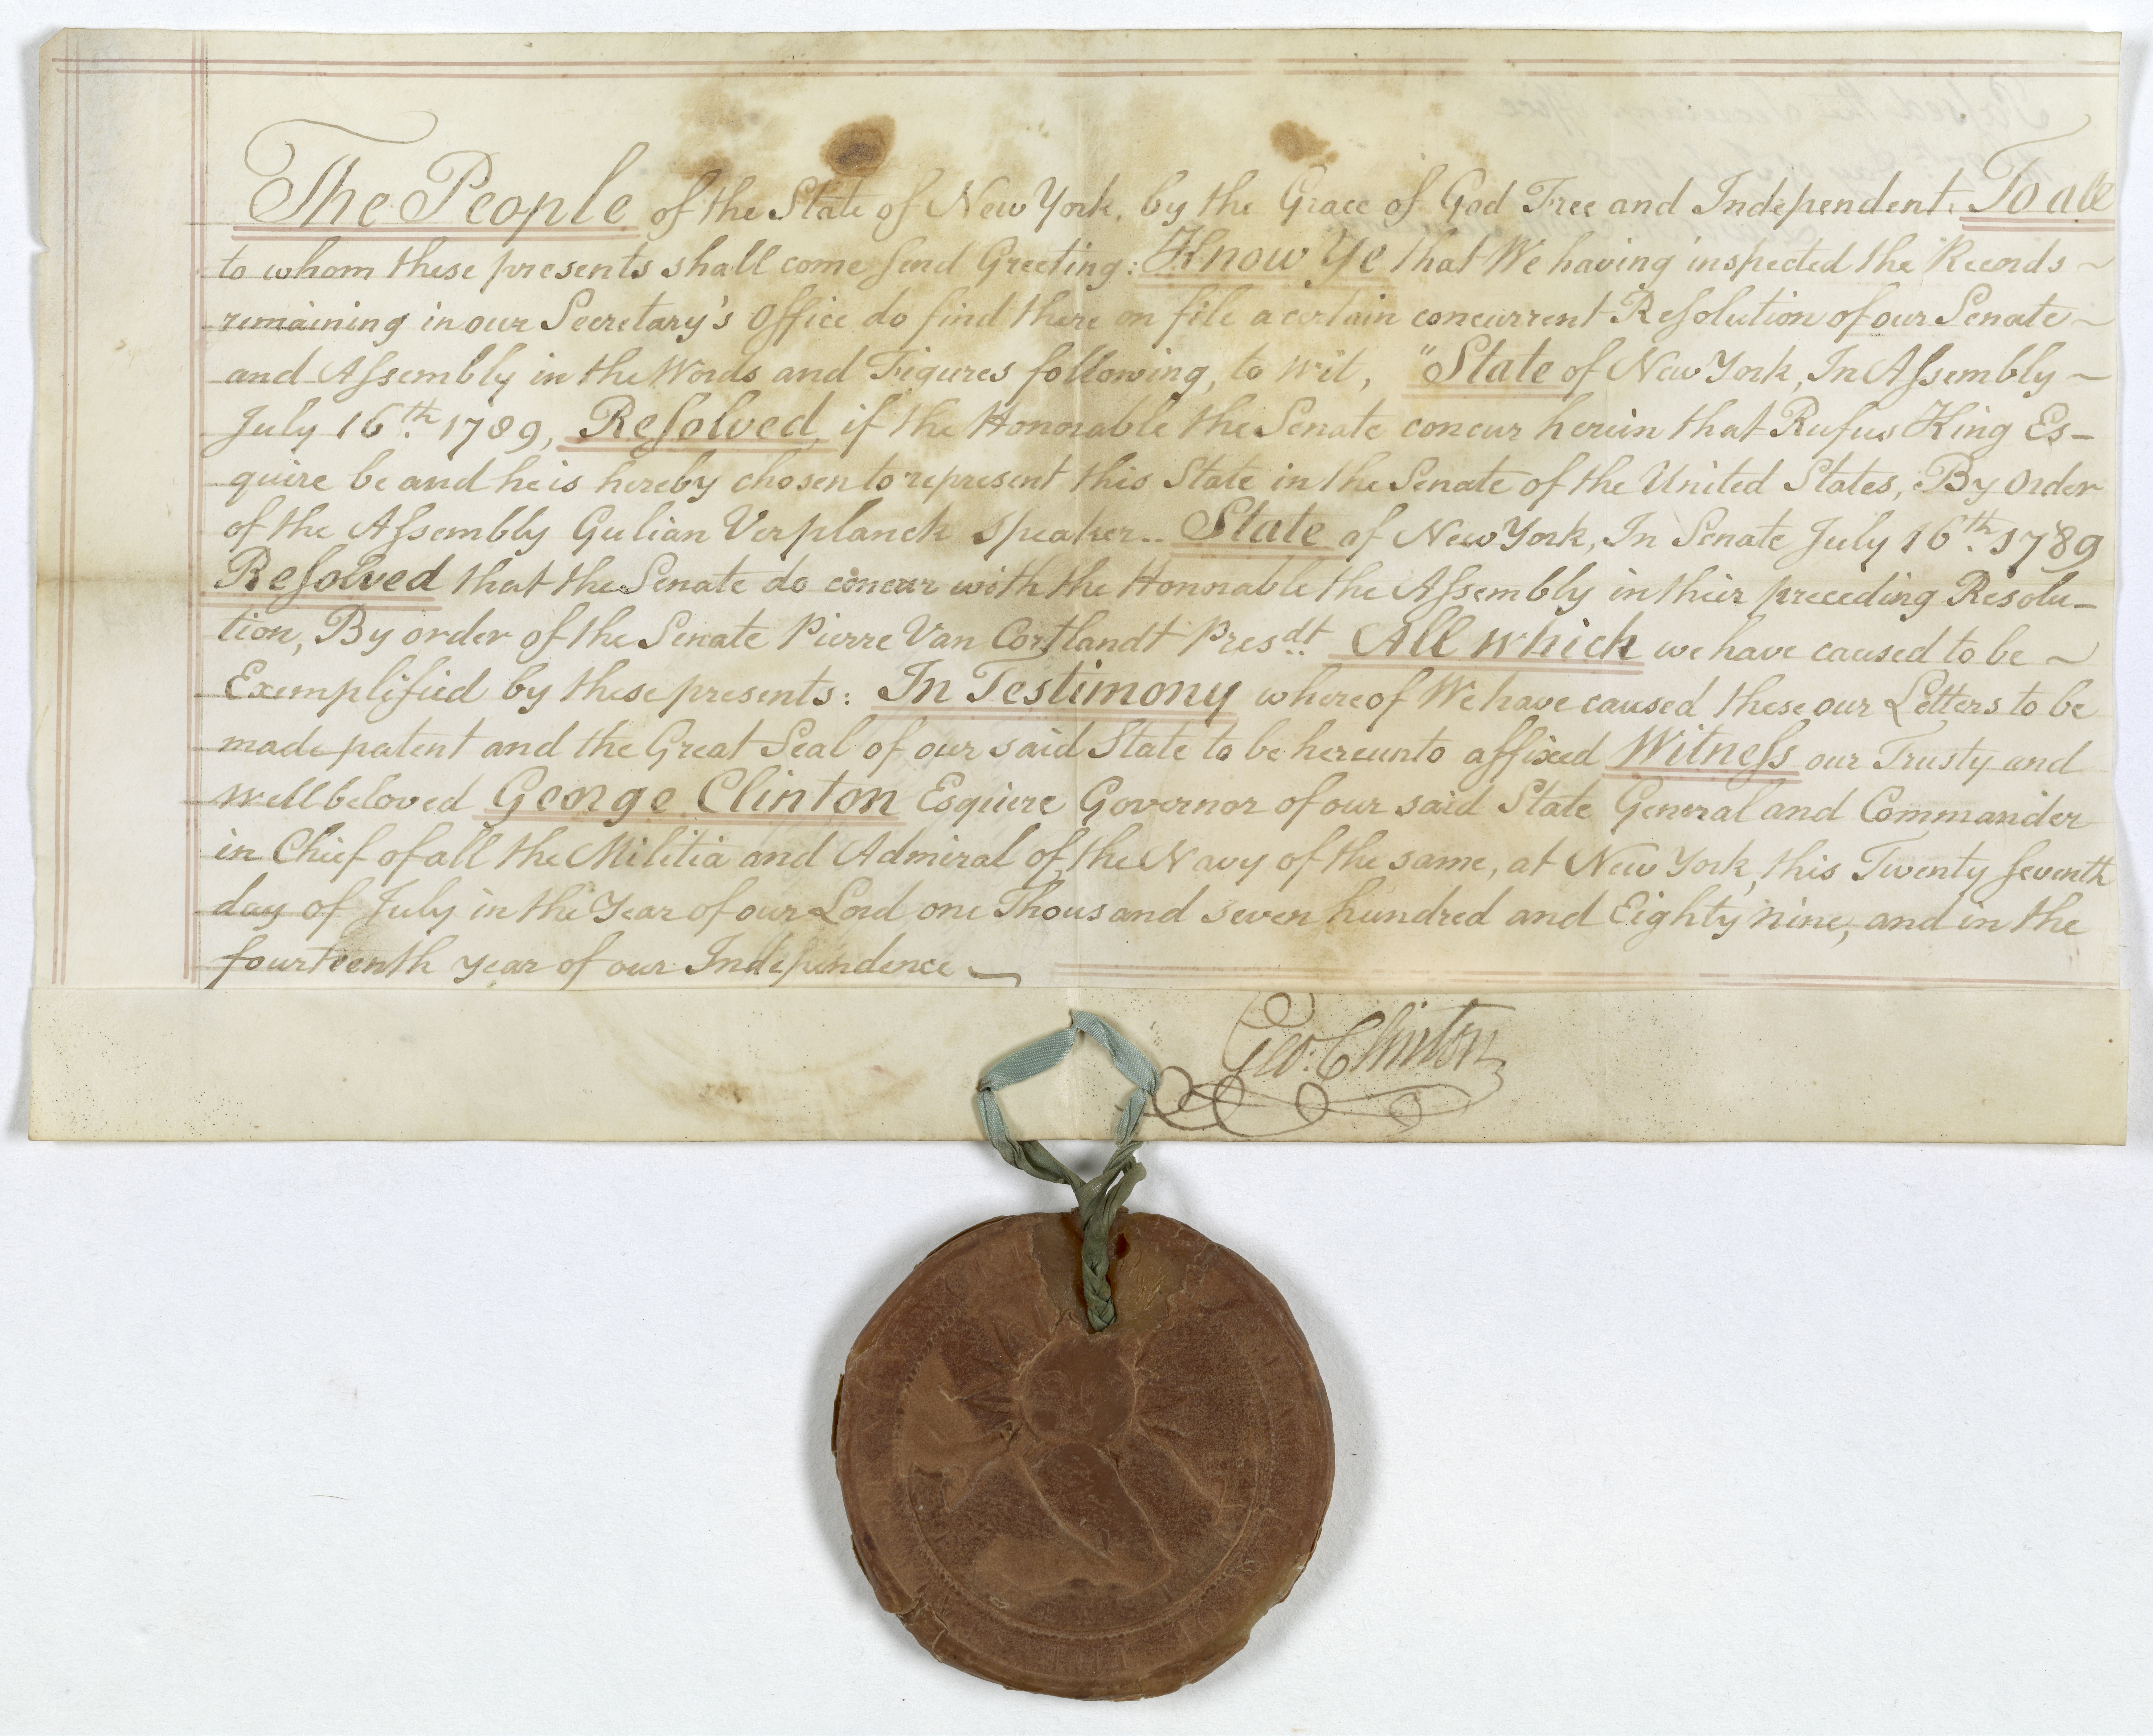 Credentials of Rufus King,  Senator from New York, July 16, 1789. (Records of the U.S. Senate, National Archives)